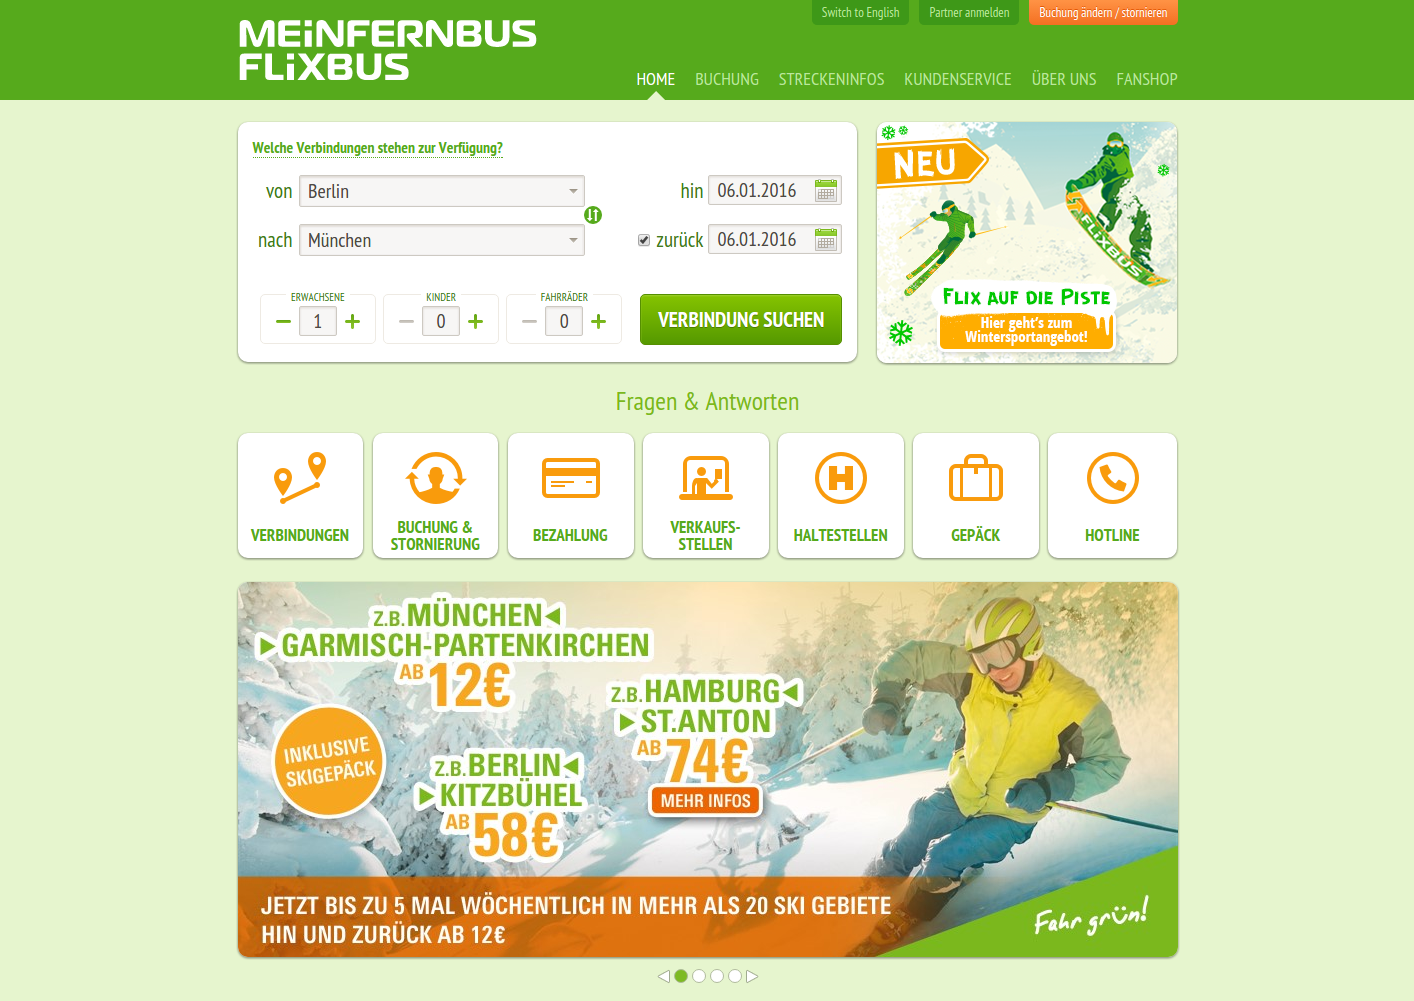 MeinFernbus transportation company website made with Symfony2